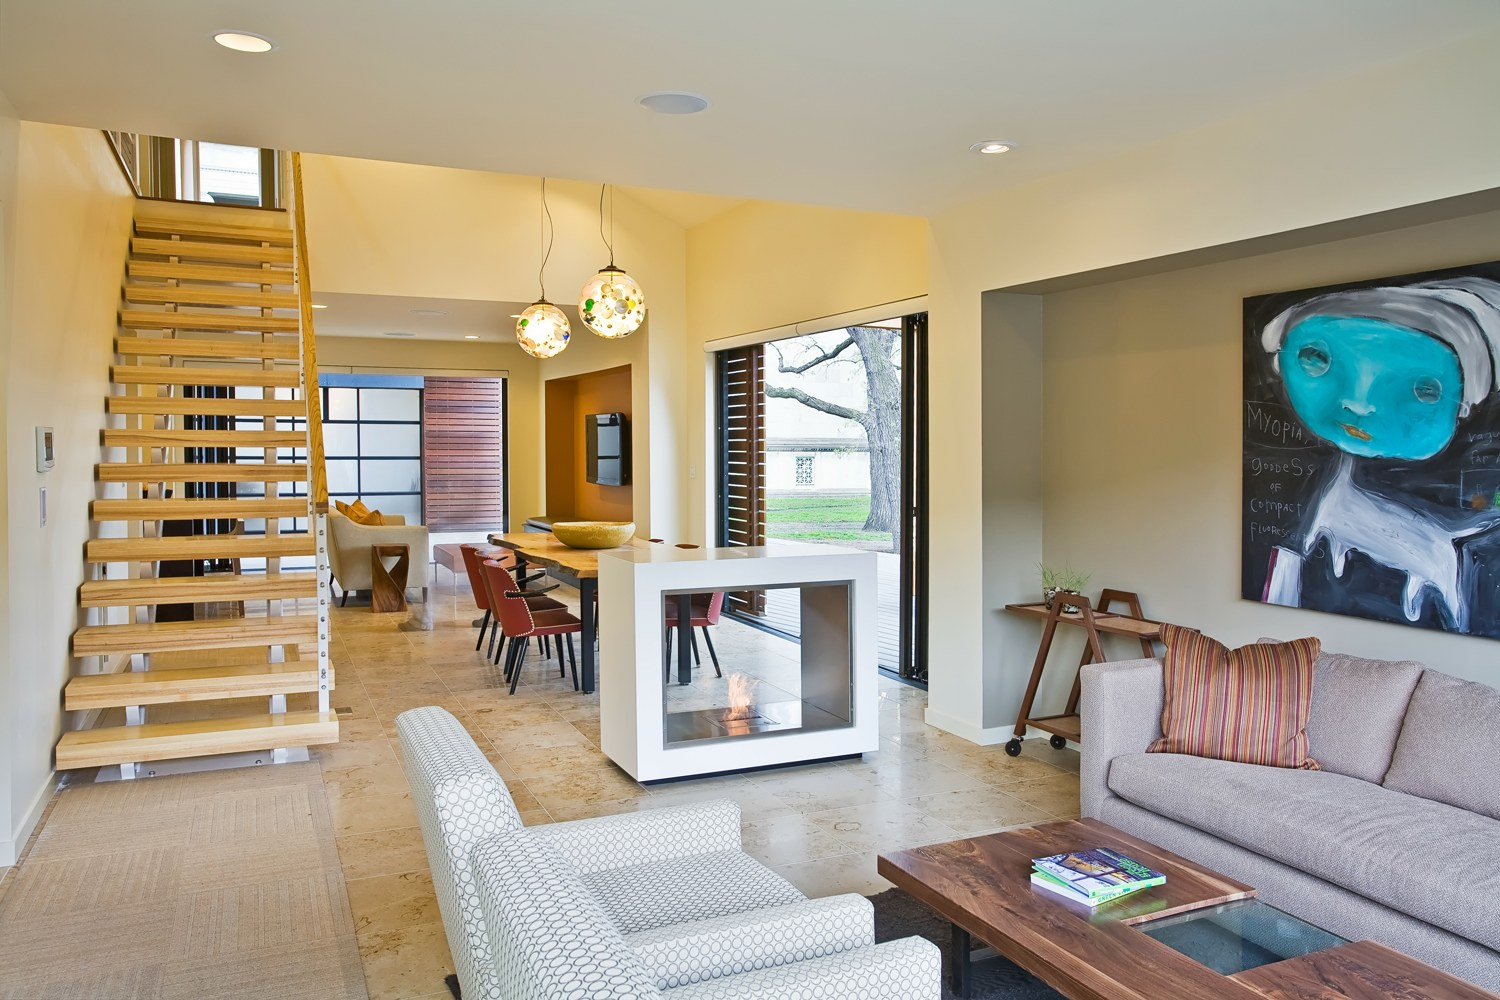 Michelle Kaufmann Leading Green Architect and Lifestyle Expert Completes 30 Homes Sees